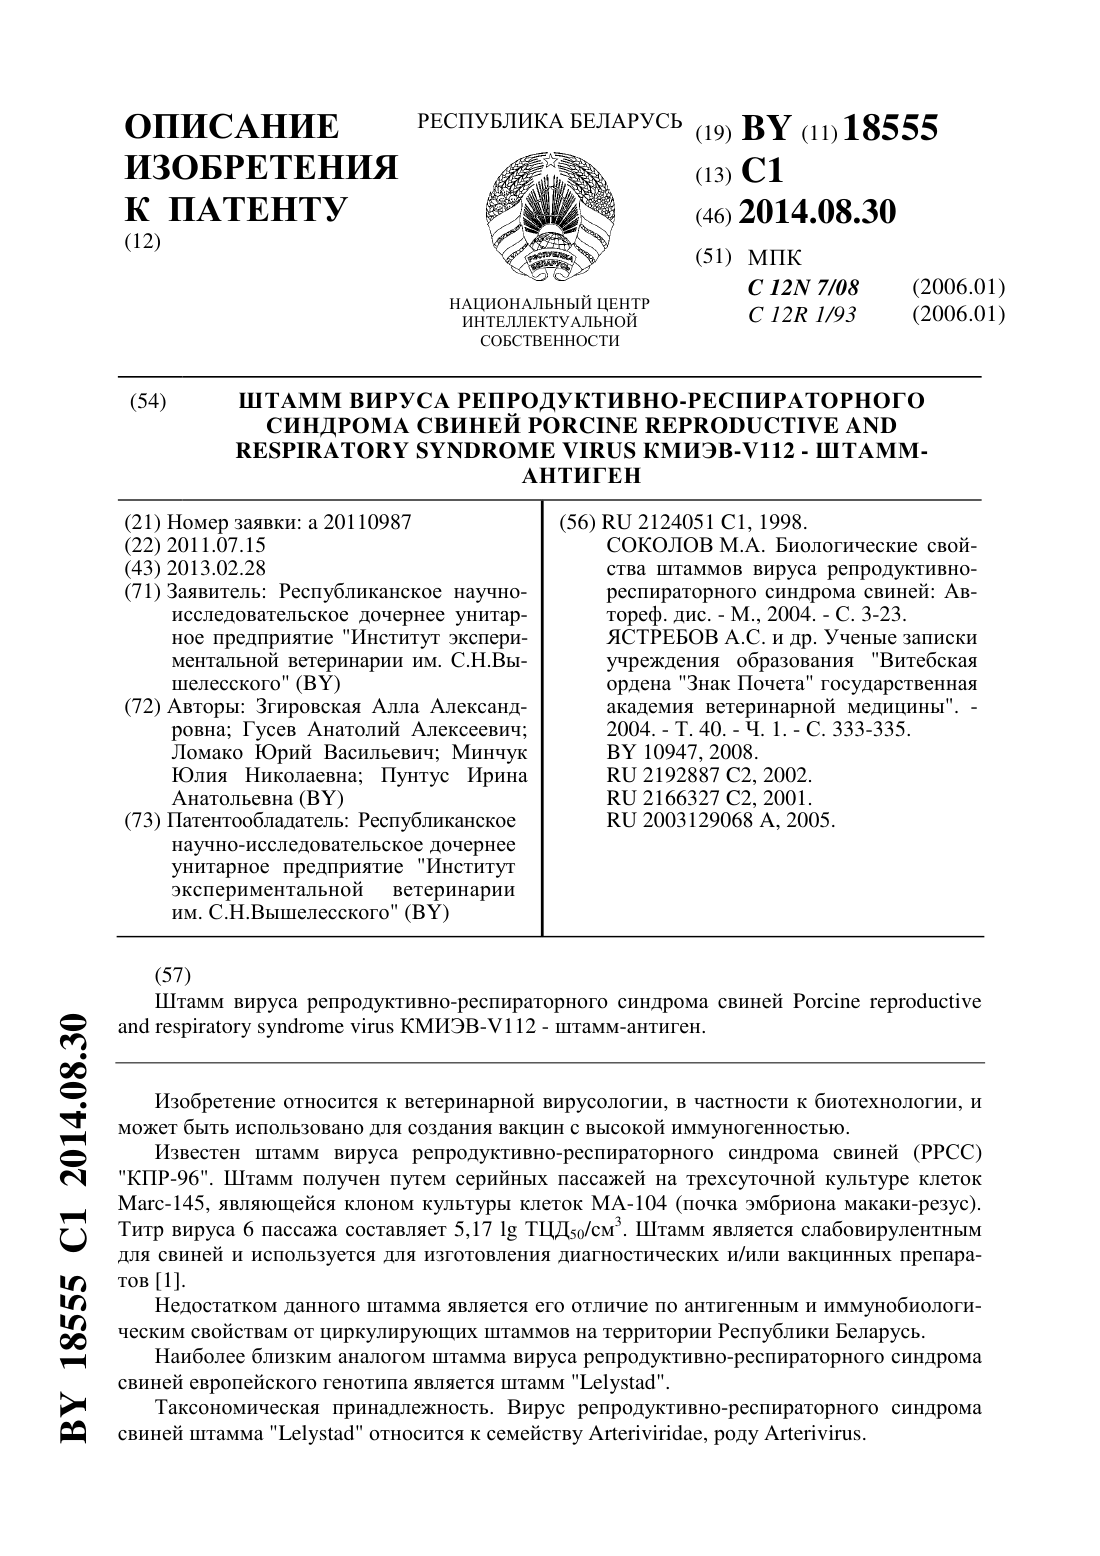 Штамм вируса репродуктивно-респираторного синдрома свиней Porcine reproductive and respiratory syndrome virus КМИЭВ-V112 – штамм-антиген